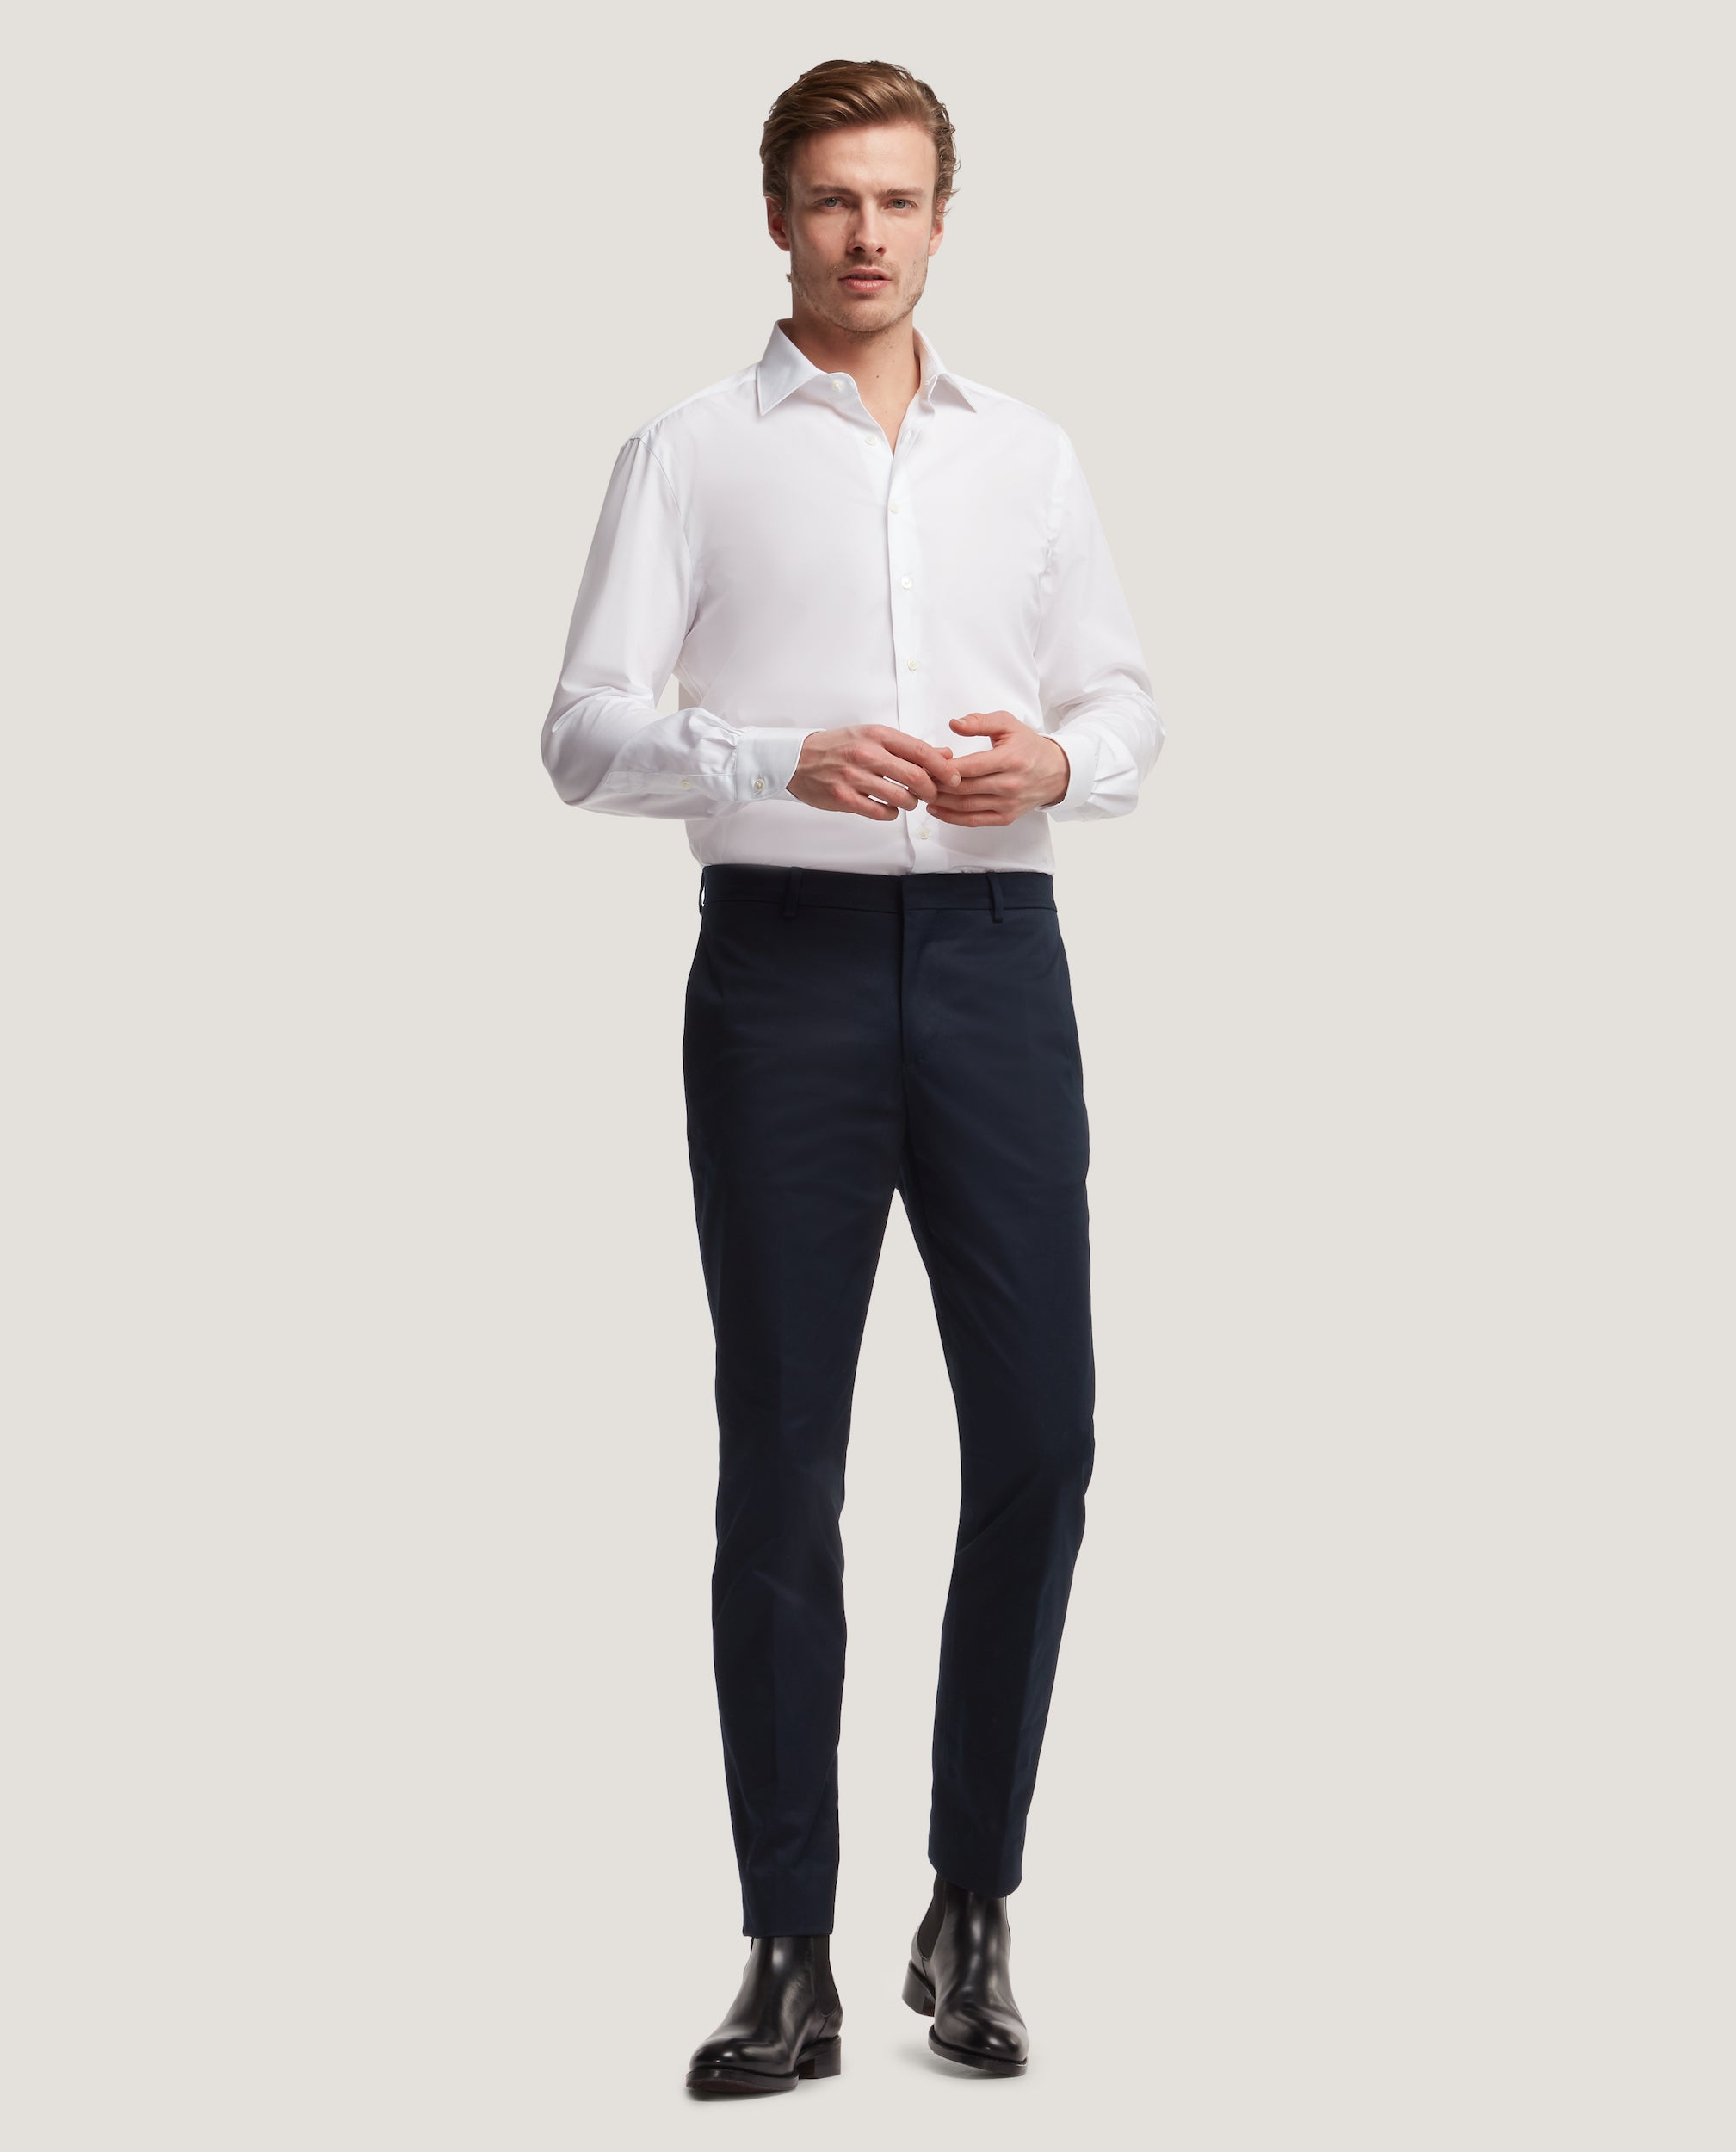 MART REGULAR FIT SHIRT | POPLIN by Salle Privée